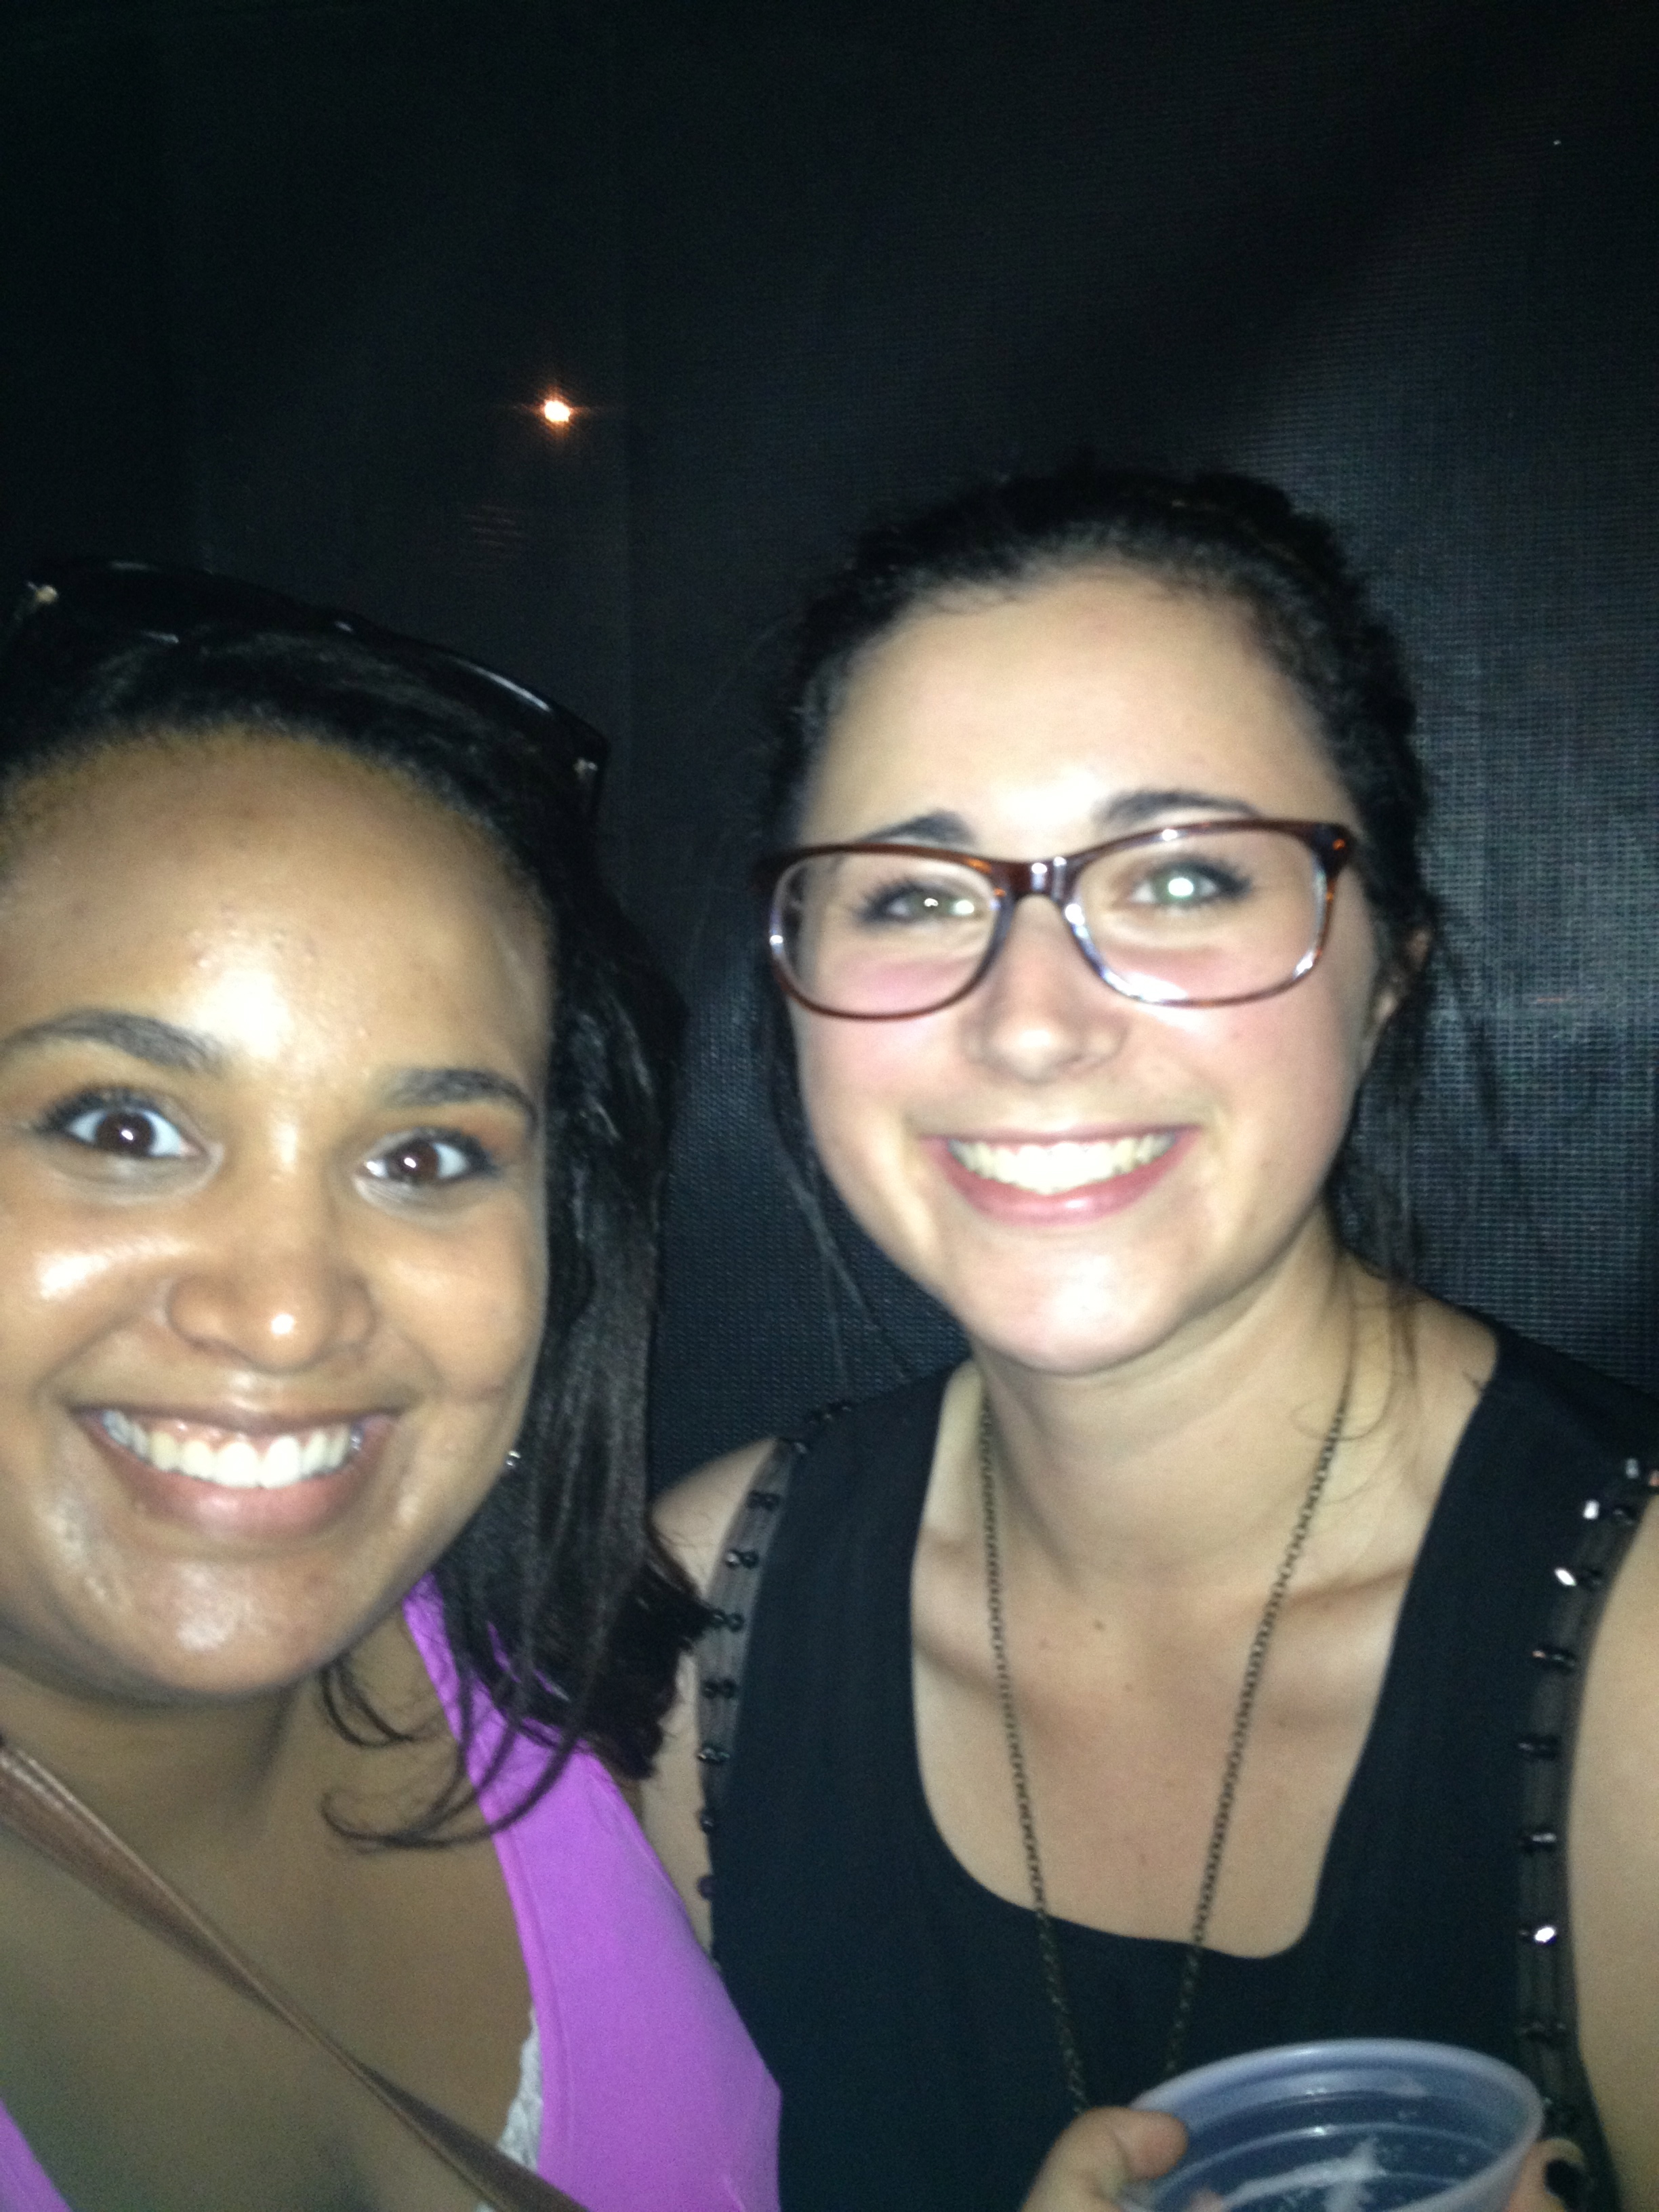 Catherine and I sweating our butts off at a Walk the Moon concert in Columbus!